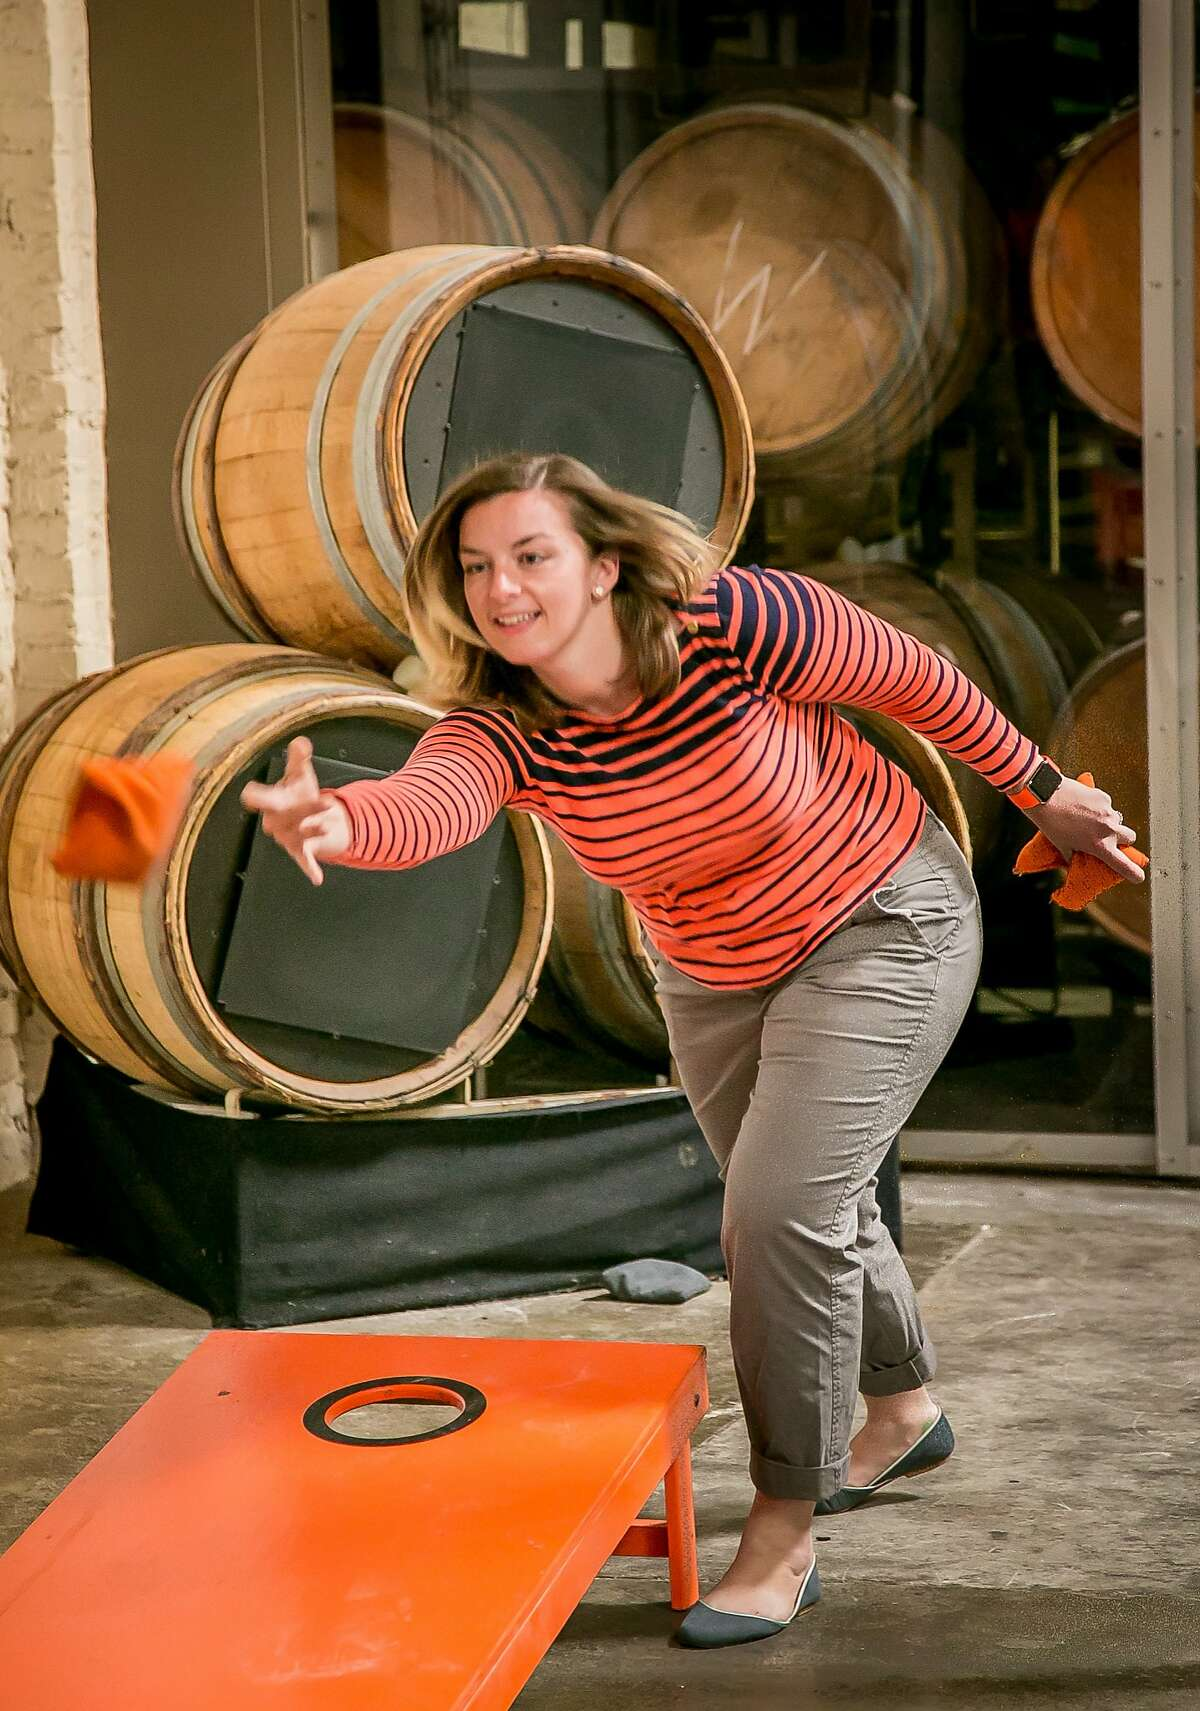 Dia Joyce plays with bean bags at at Bluxome Street Winery in San Francisco, Calif. on Saturday, October 3rd, 2015.